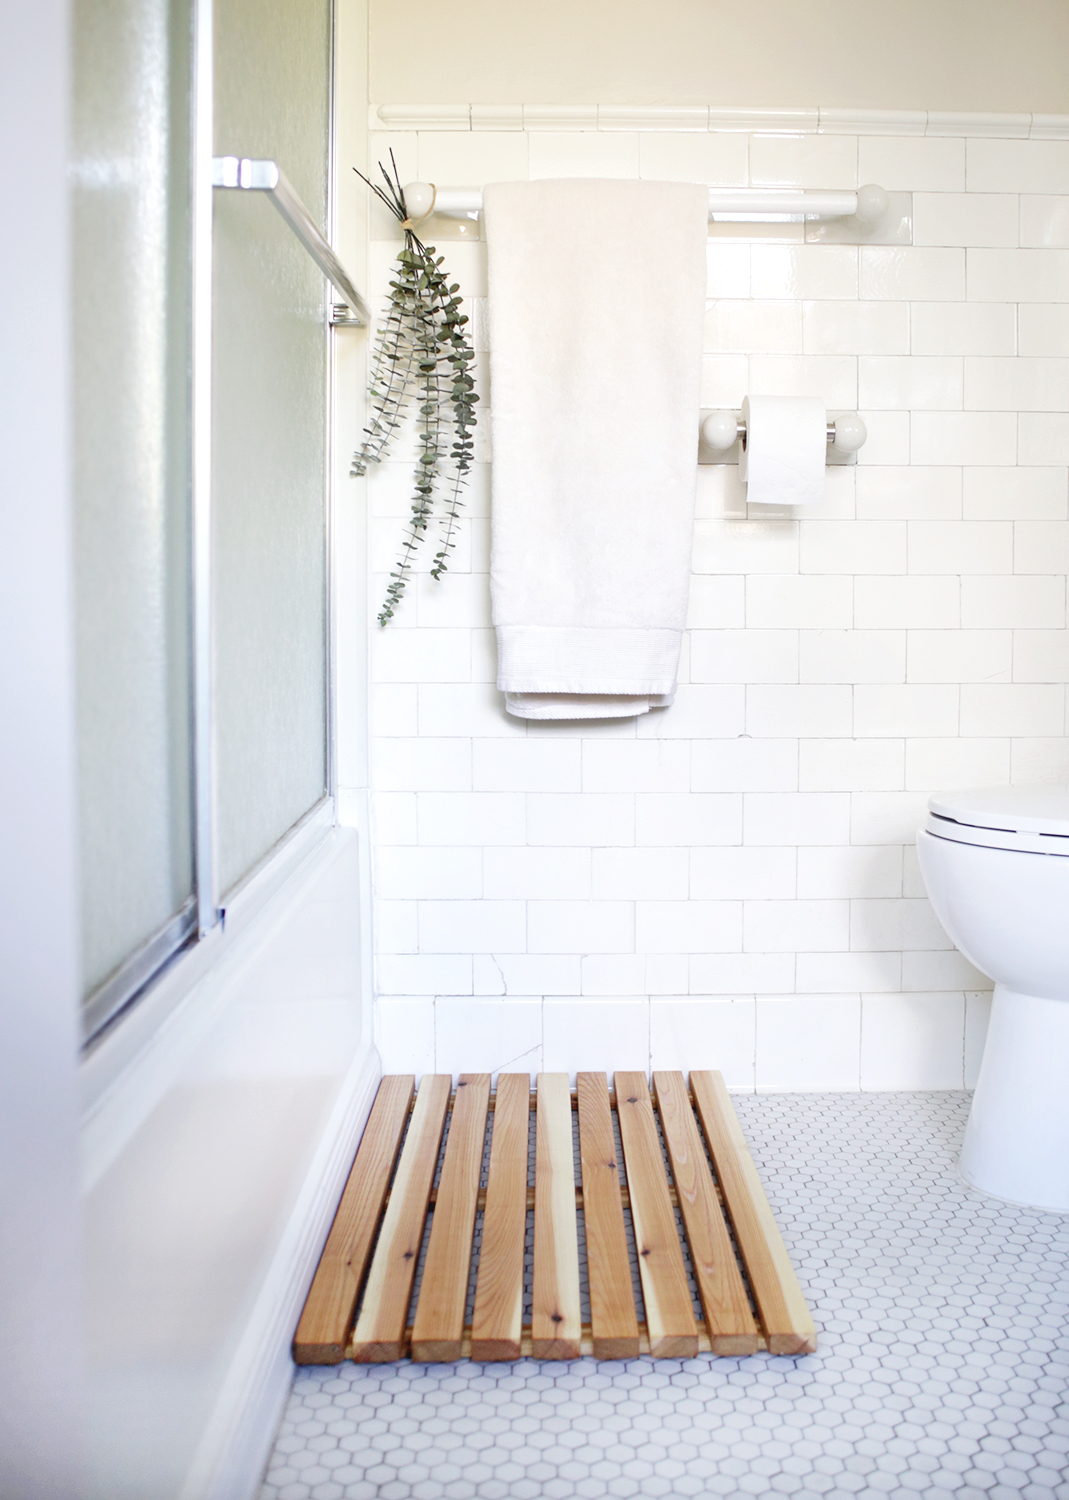 bath mat ideas to make your bathroom feel more like a spa -  a cedar bath mat is a great diy project